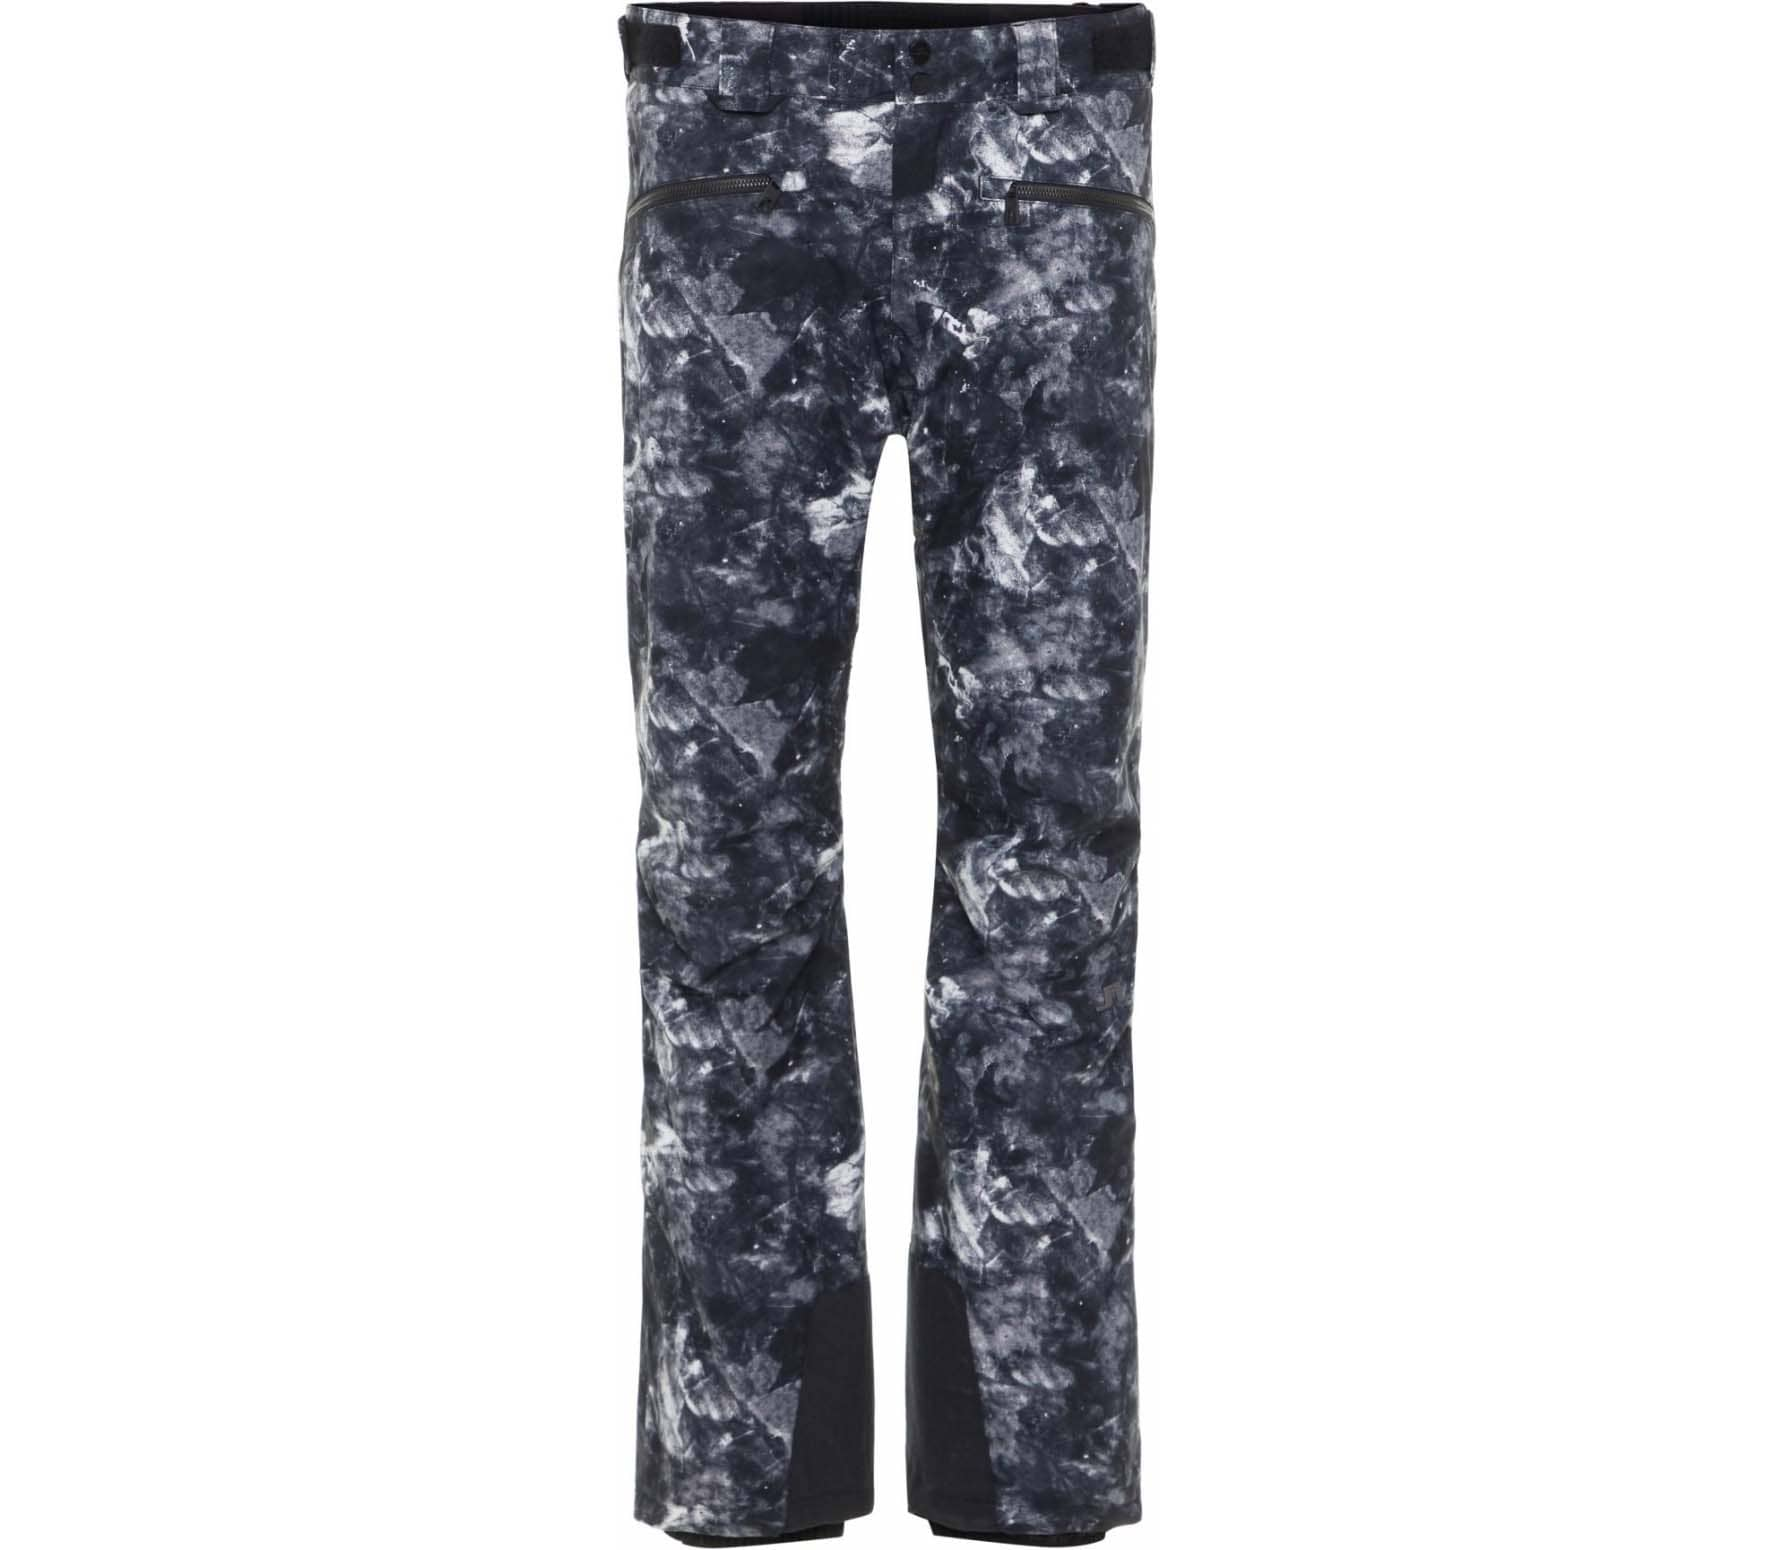 Truuli Print JL 2L Men Ski Trousers